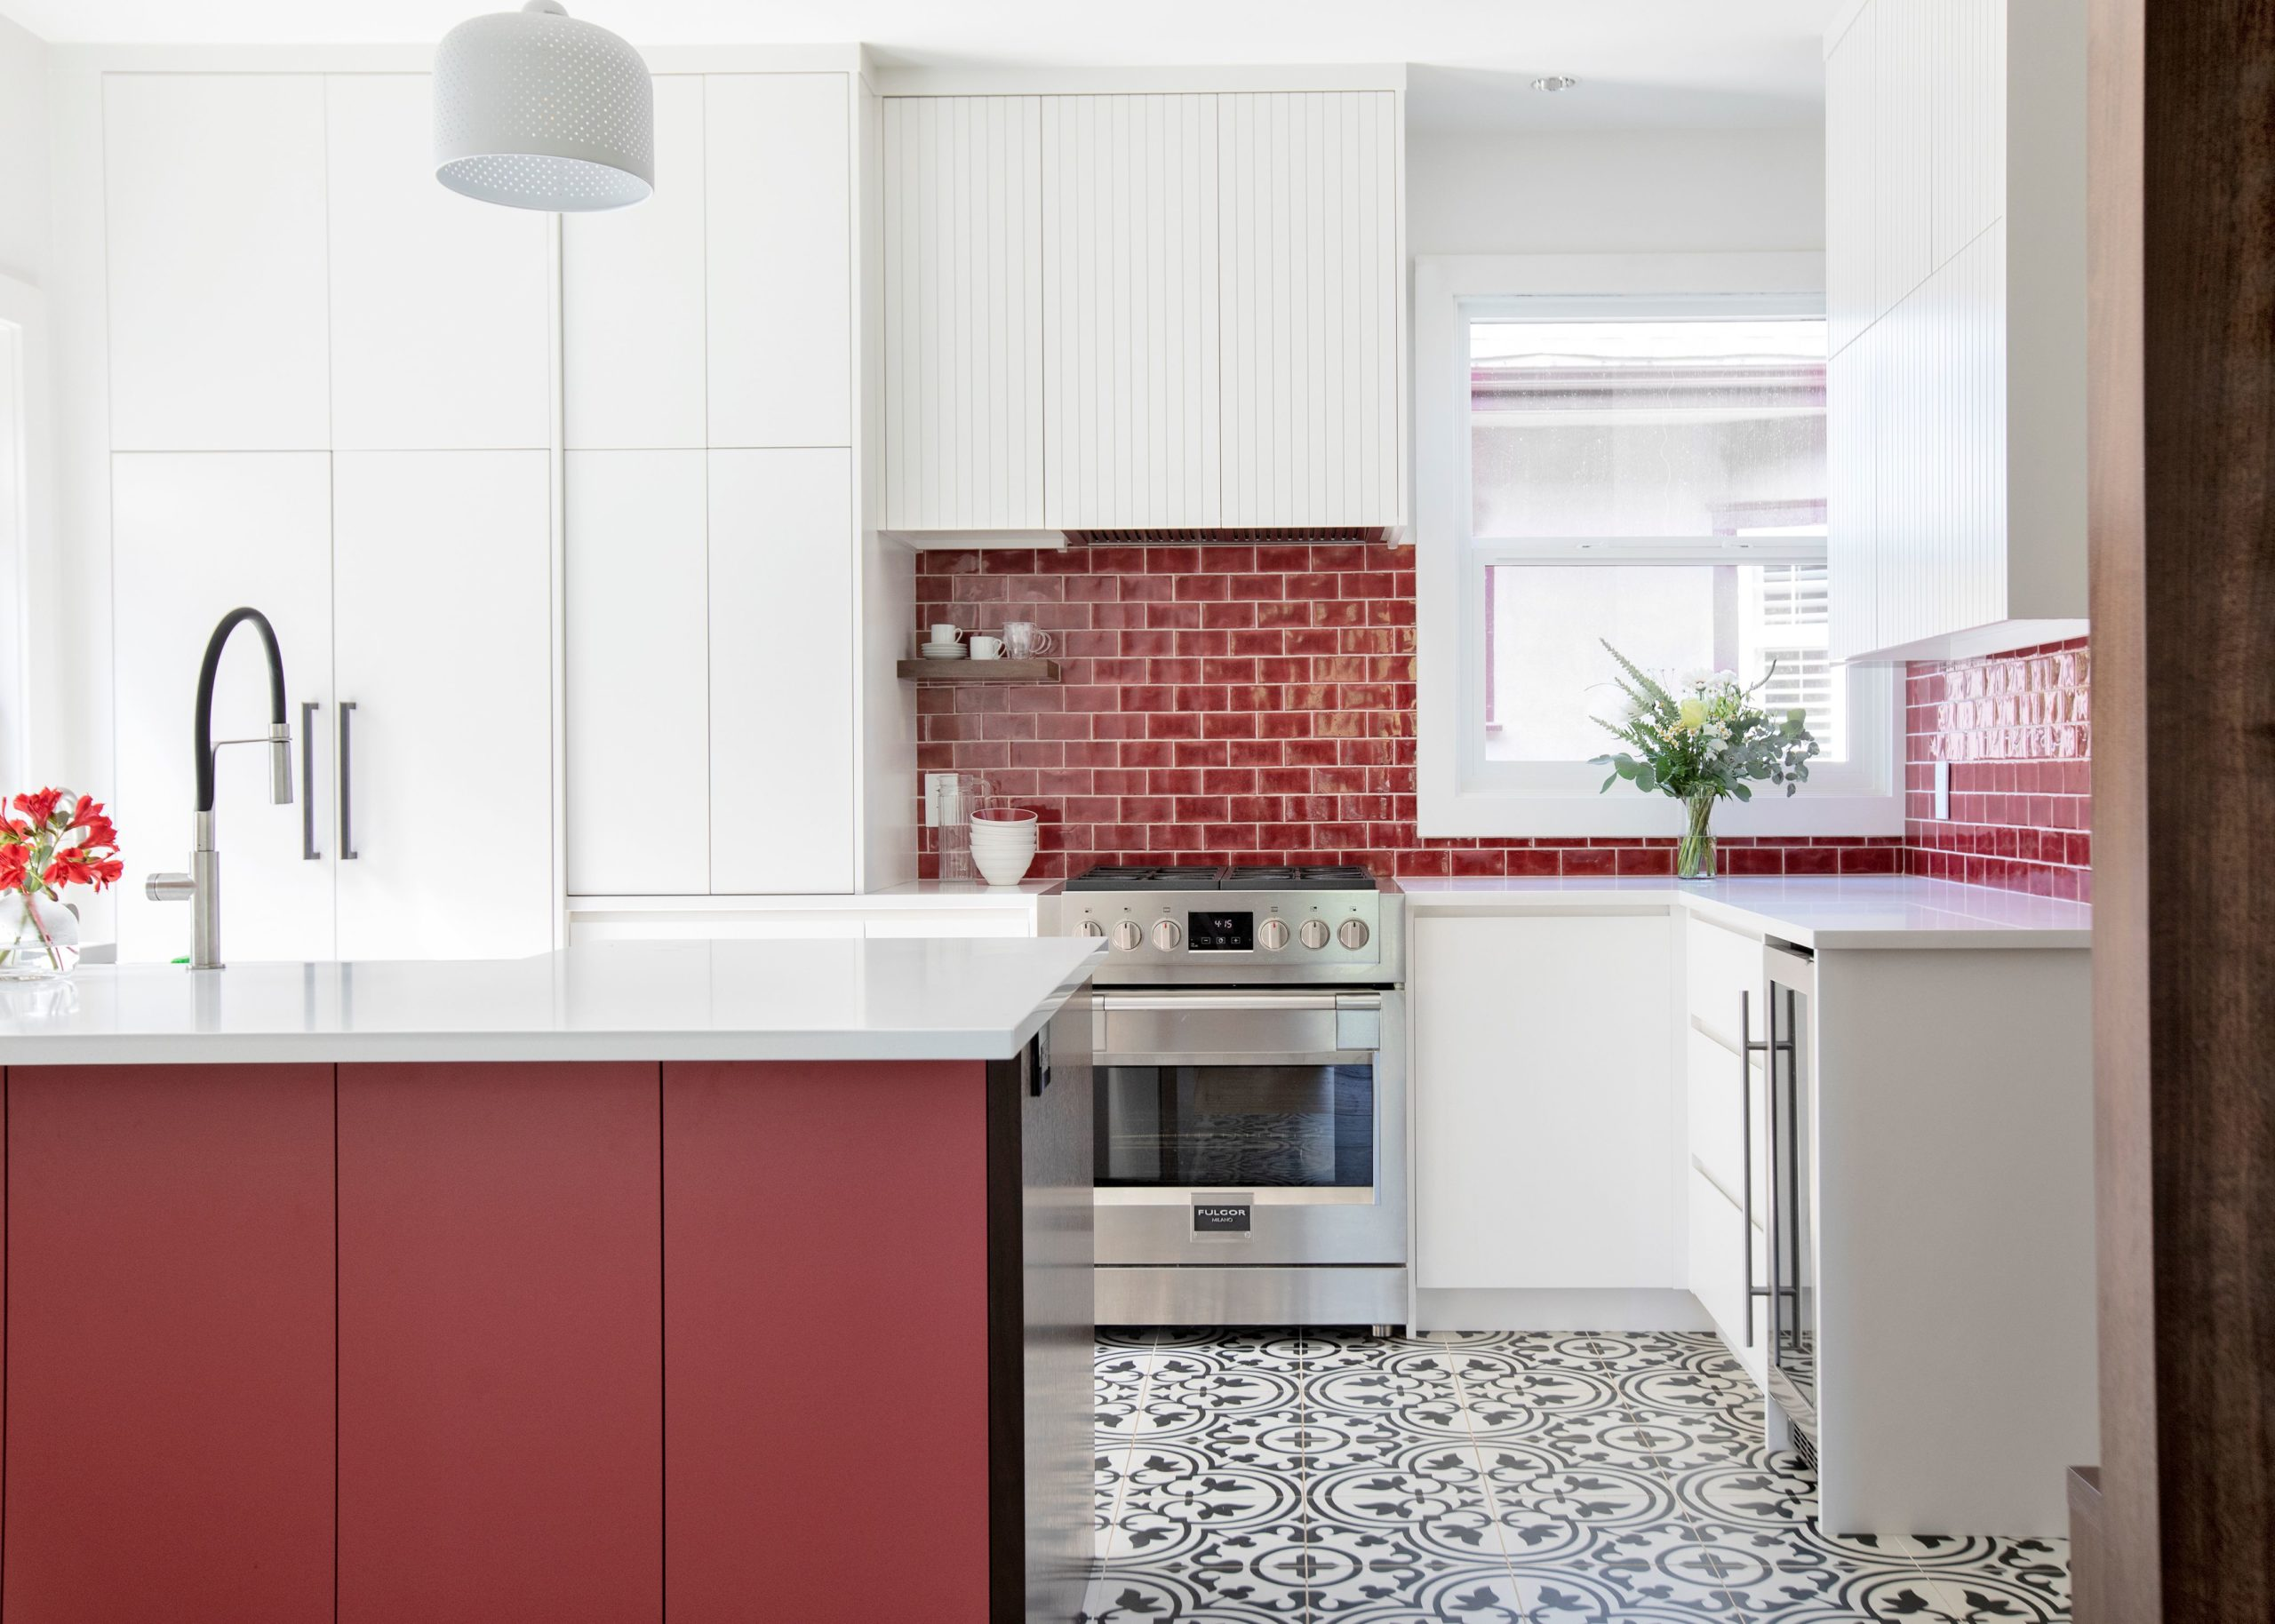 Alair in the News: Kitchen Reno